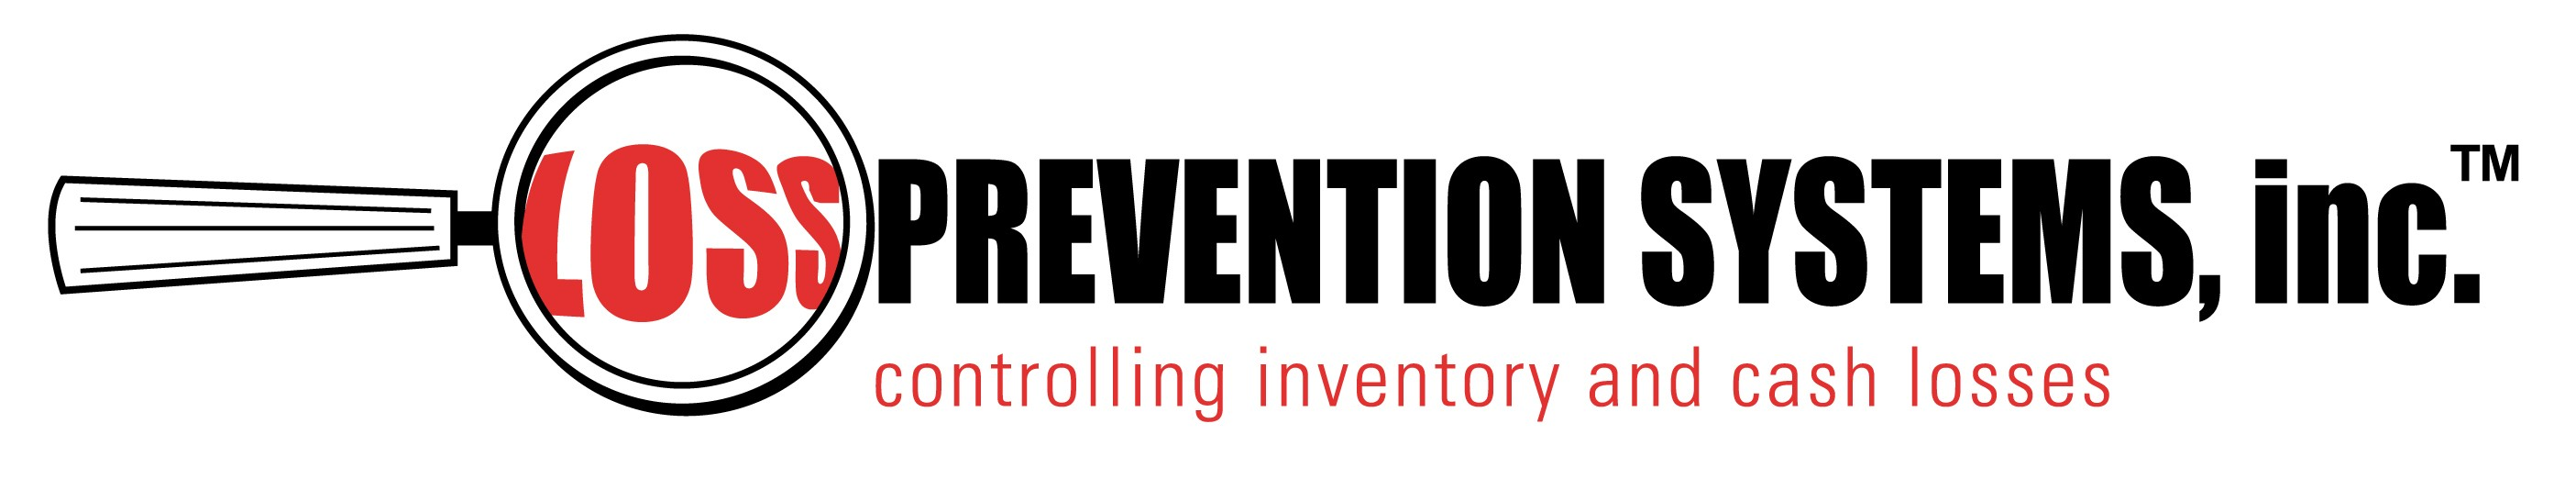 Loss Prevention Systems Inc  | LinkedIn